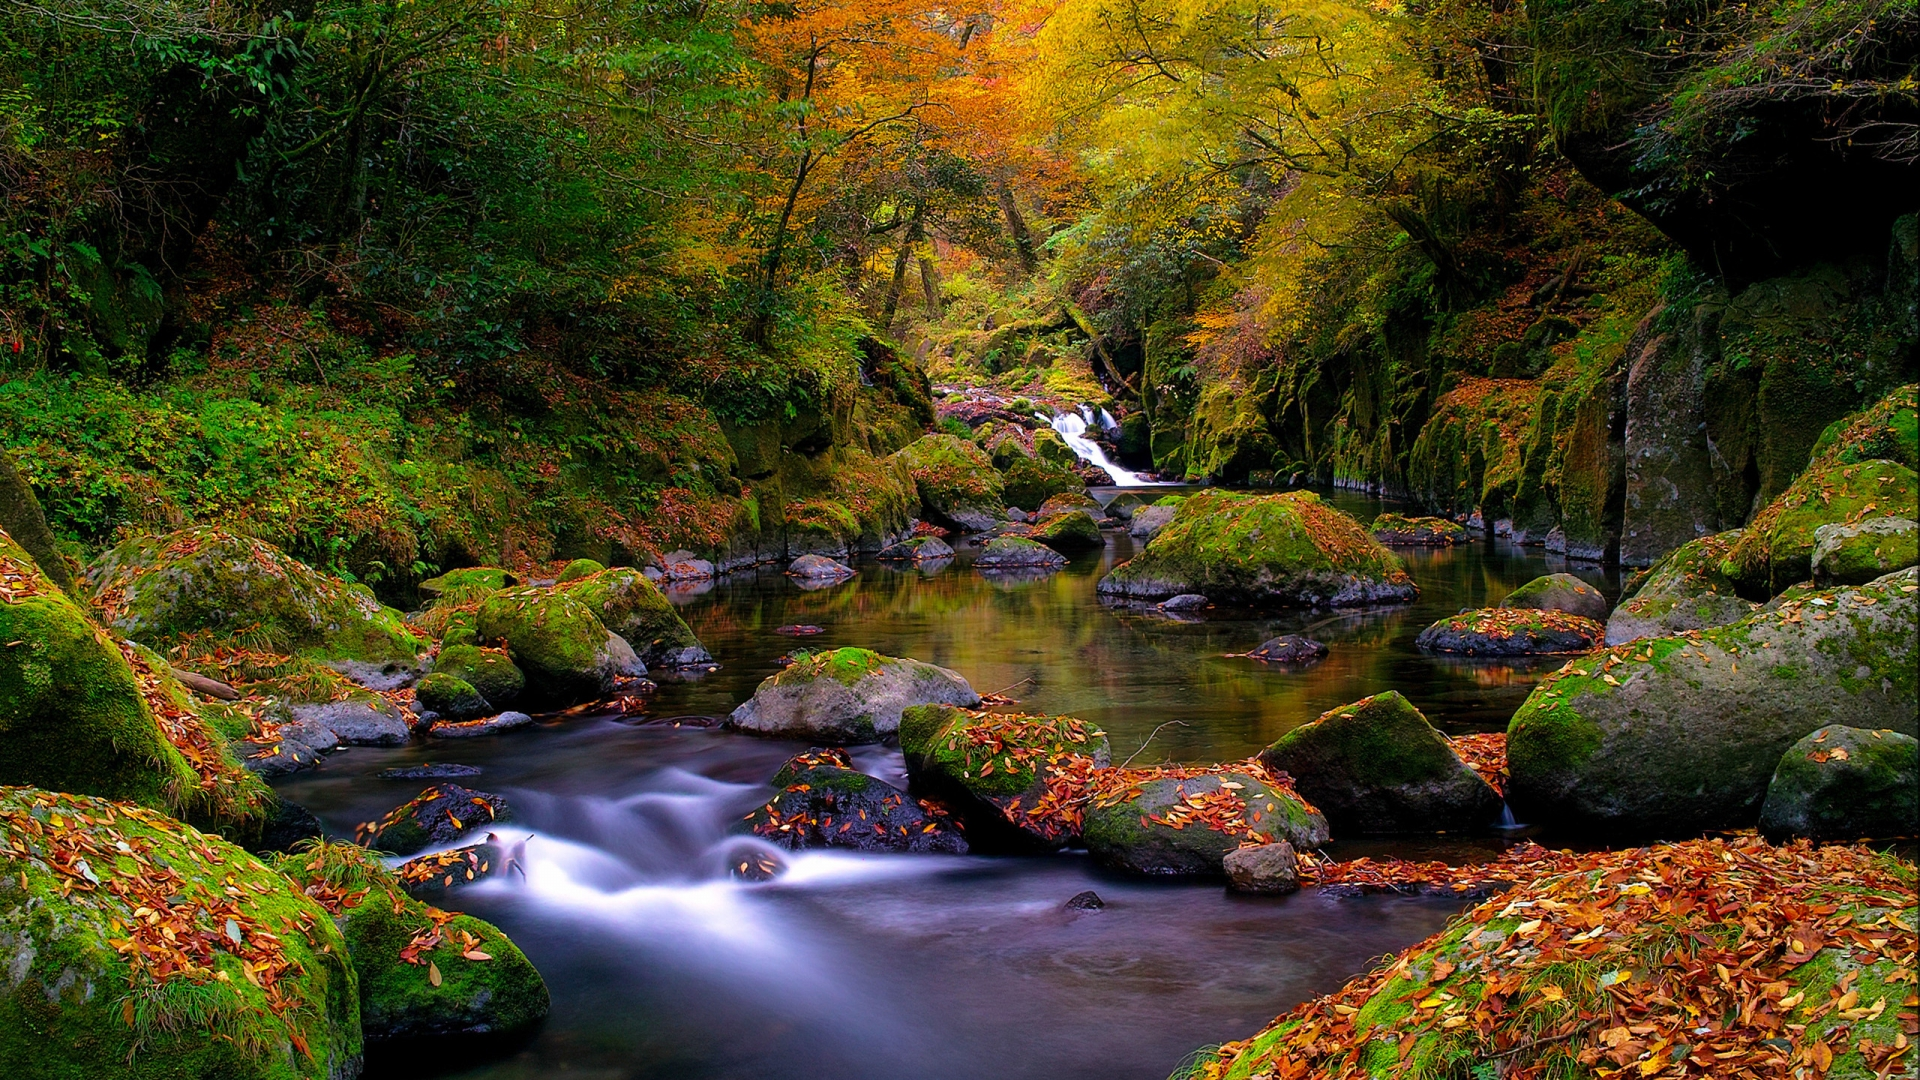 3d Funny Cartoon Wallpapers A Beautiful Autumn Landscape In The Forest